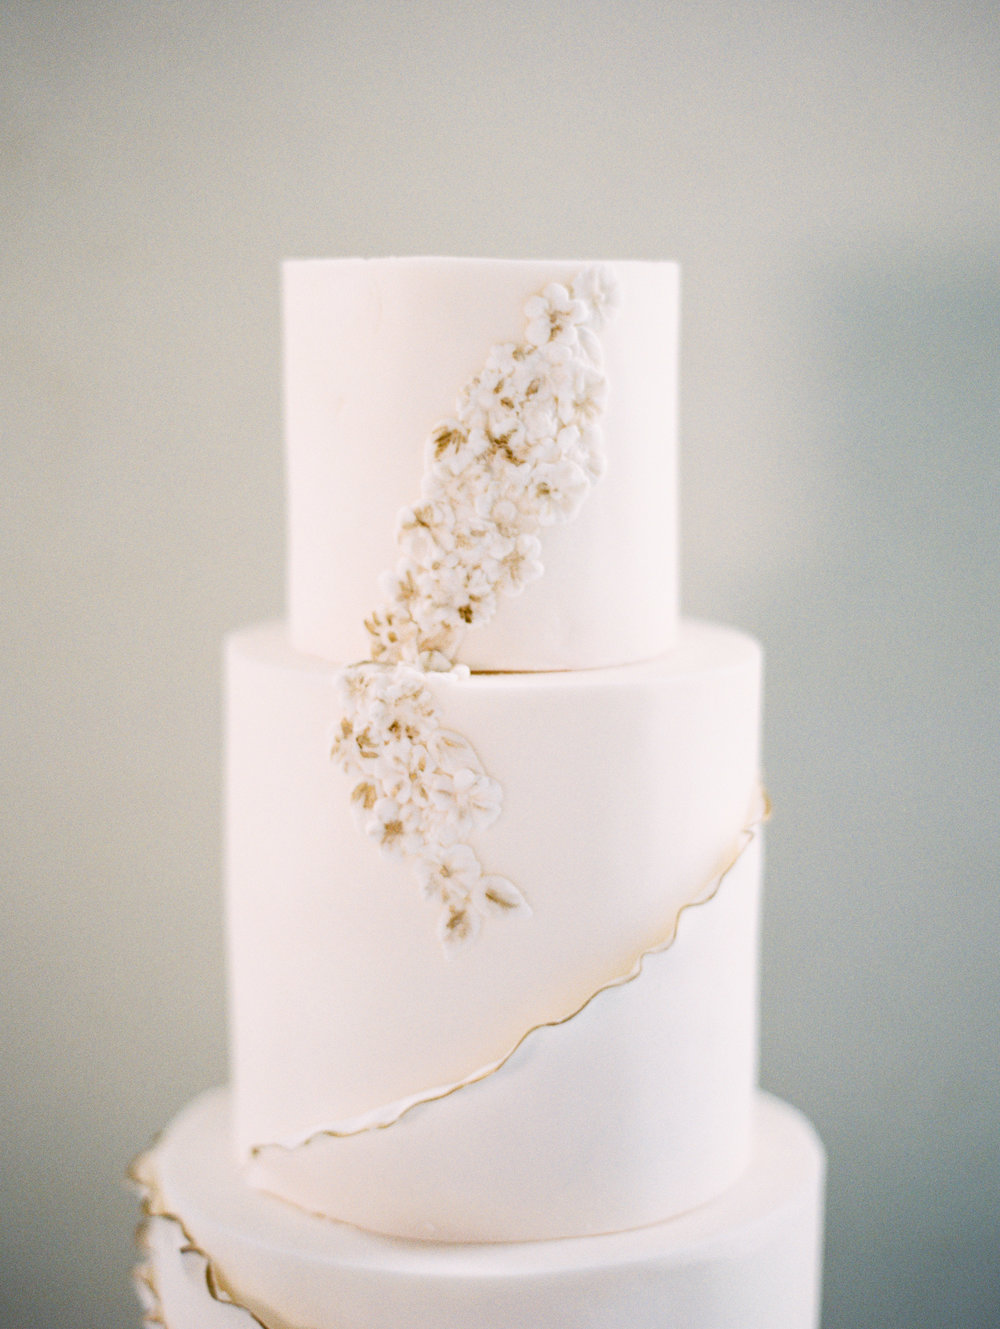 The Timeless Stylist-Elegant and Romantic Wedding Styling-Simple and Elegant Iced Wedding Cake with Gold Details